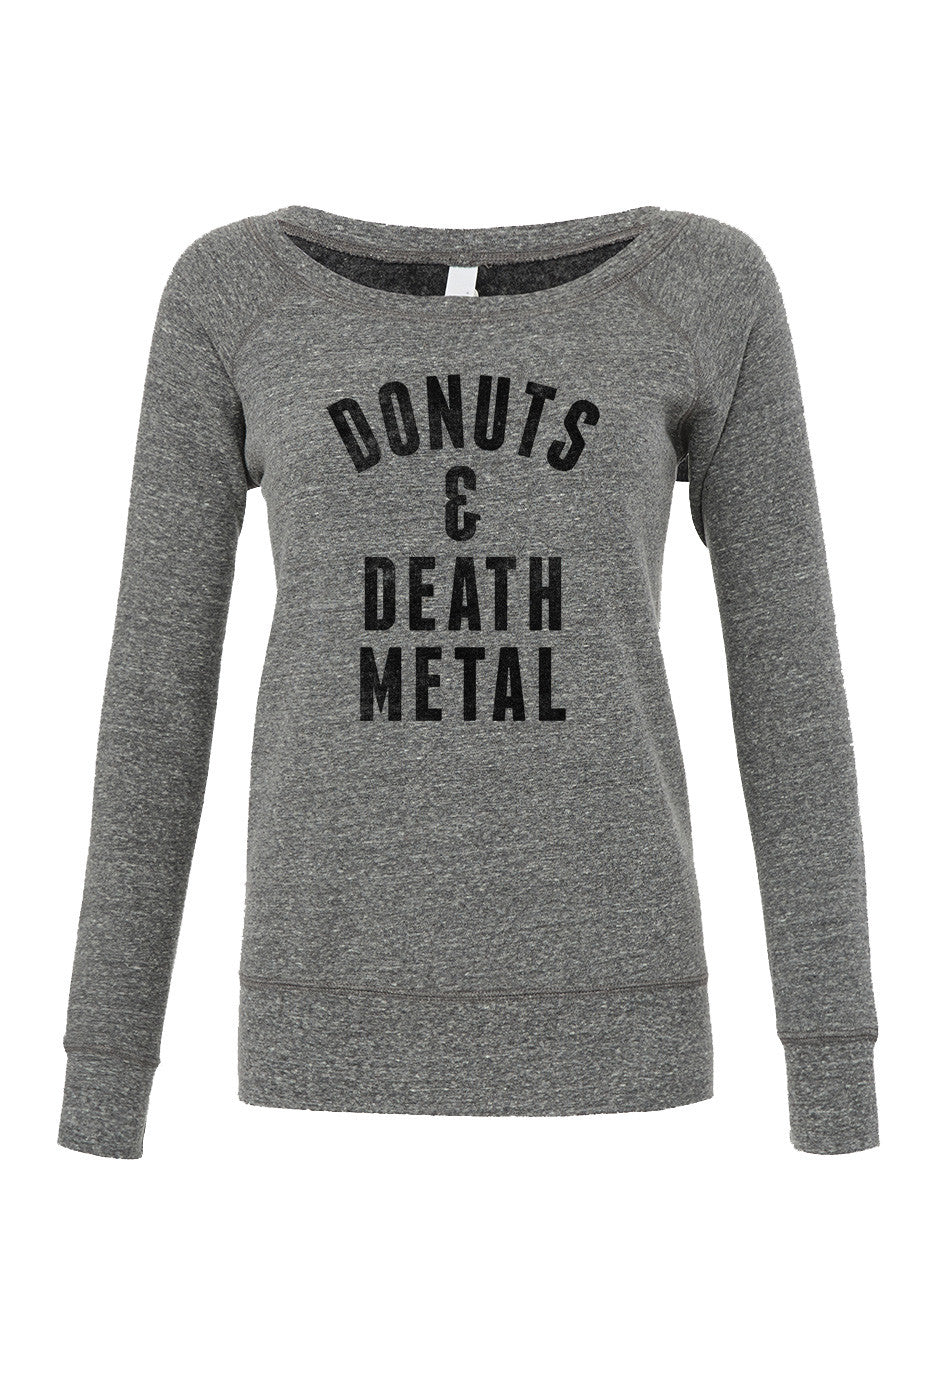 Women's Donuts and Death Metal Scoop Neck Fleece